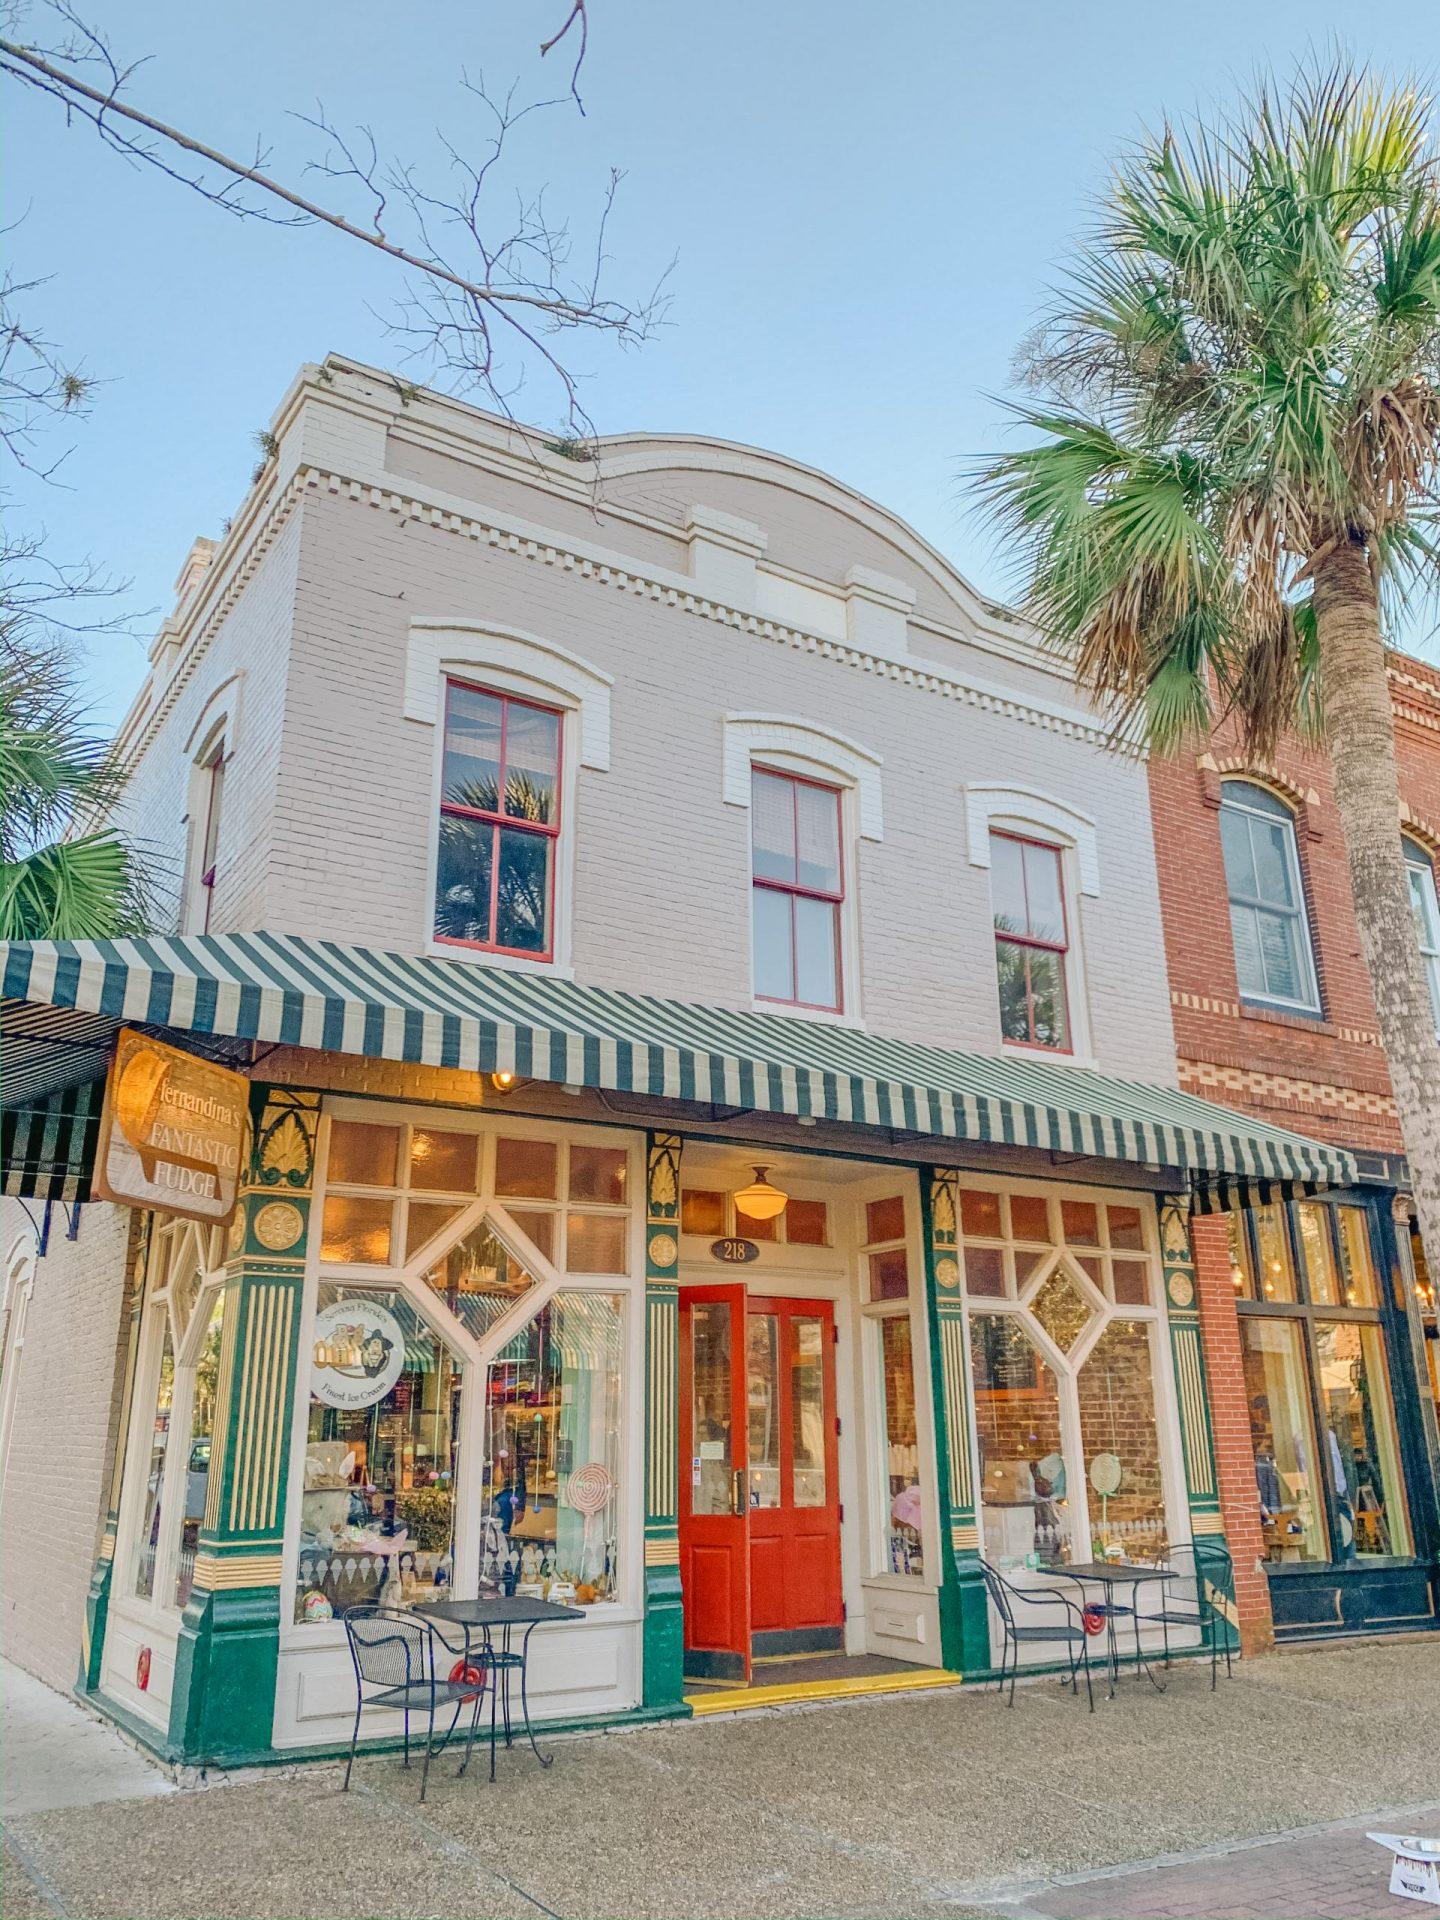 Bijuleni | Amelia Island Travel Guide - Everything You need to know